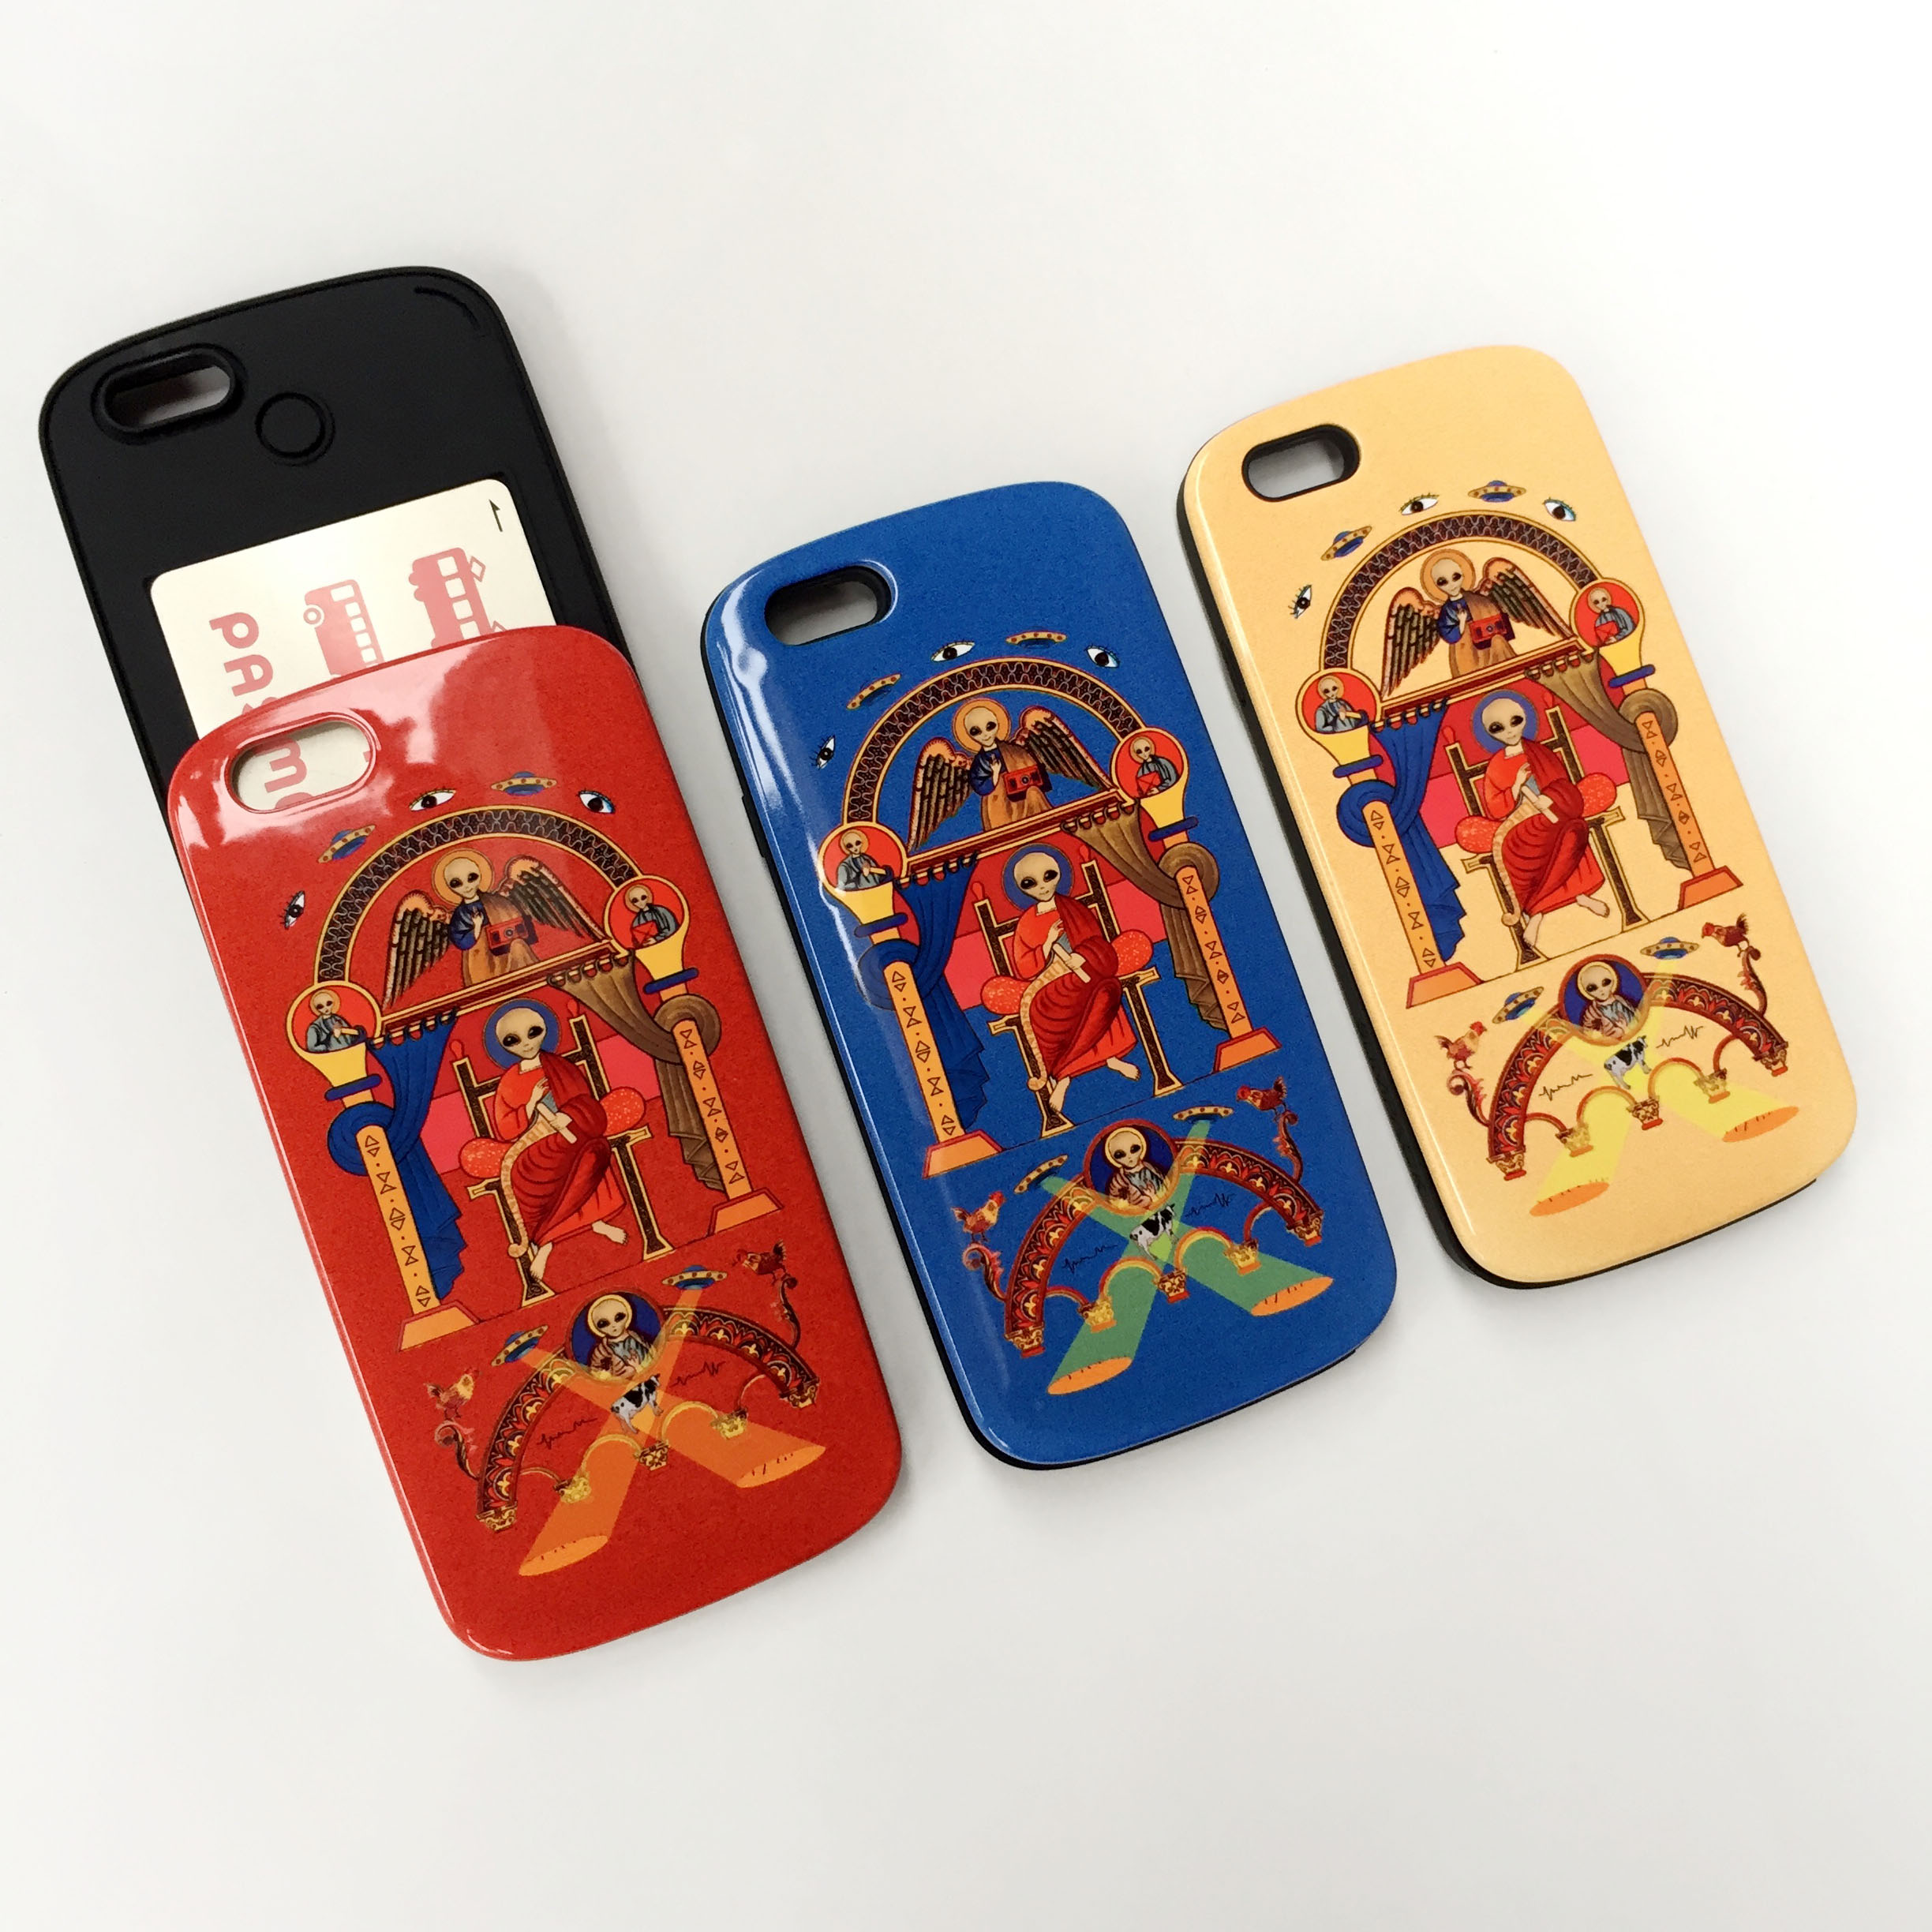 motty_iphone classical aliens silicon_graphiccover